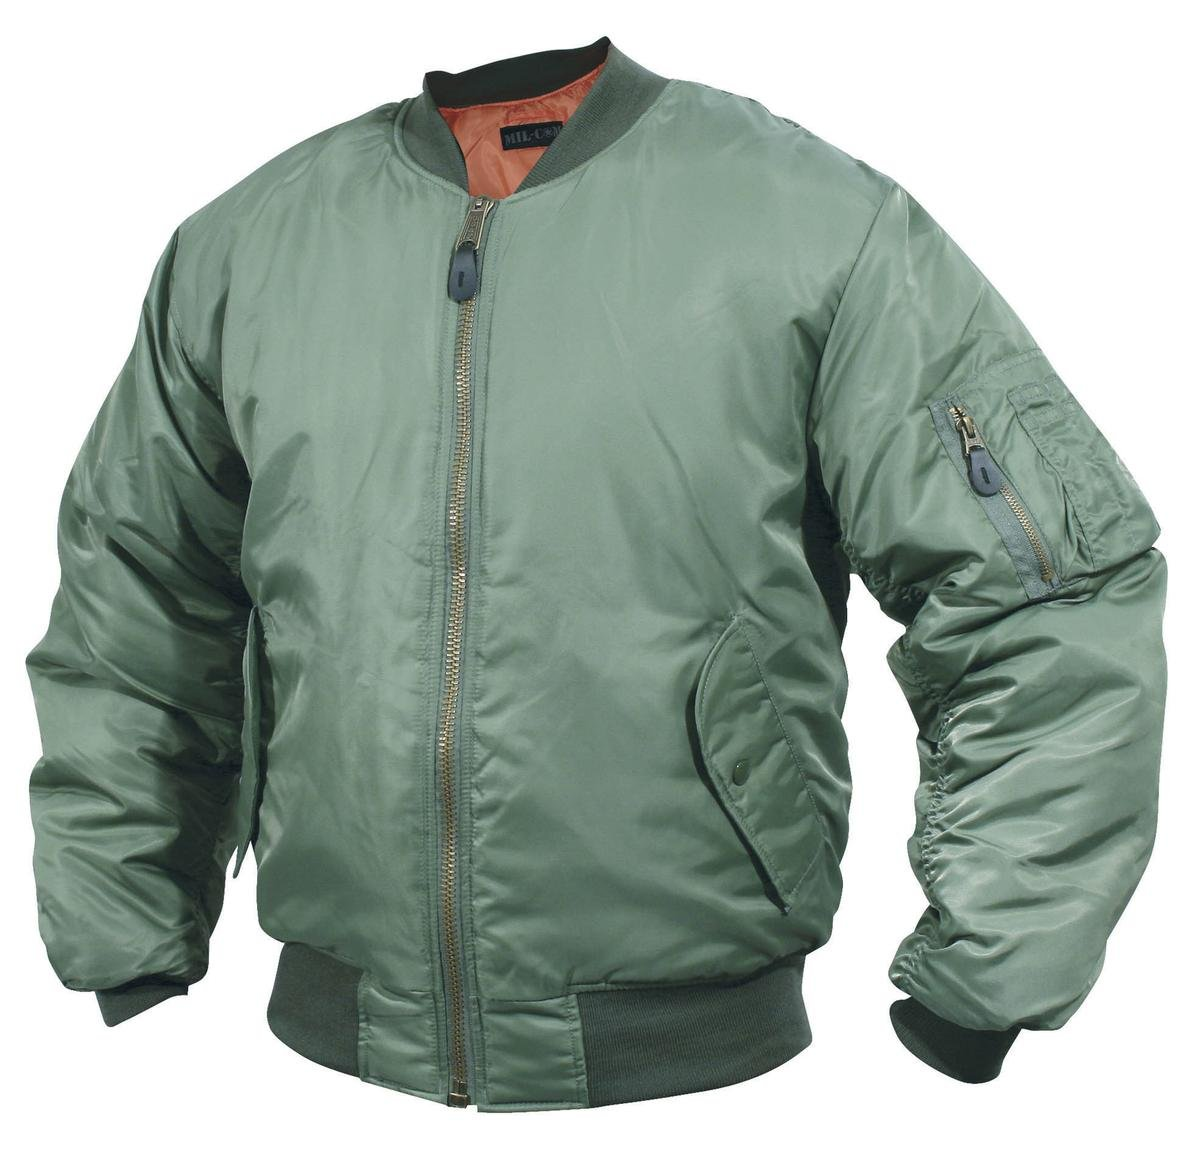 MA1 Flight Jacket - Green: Amazon.co.uk: Sports & Outdoors